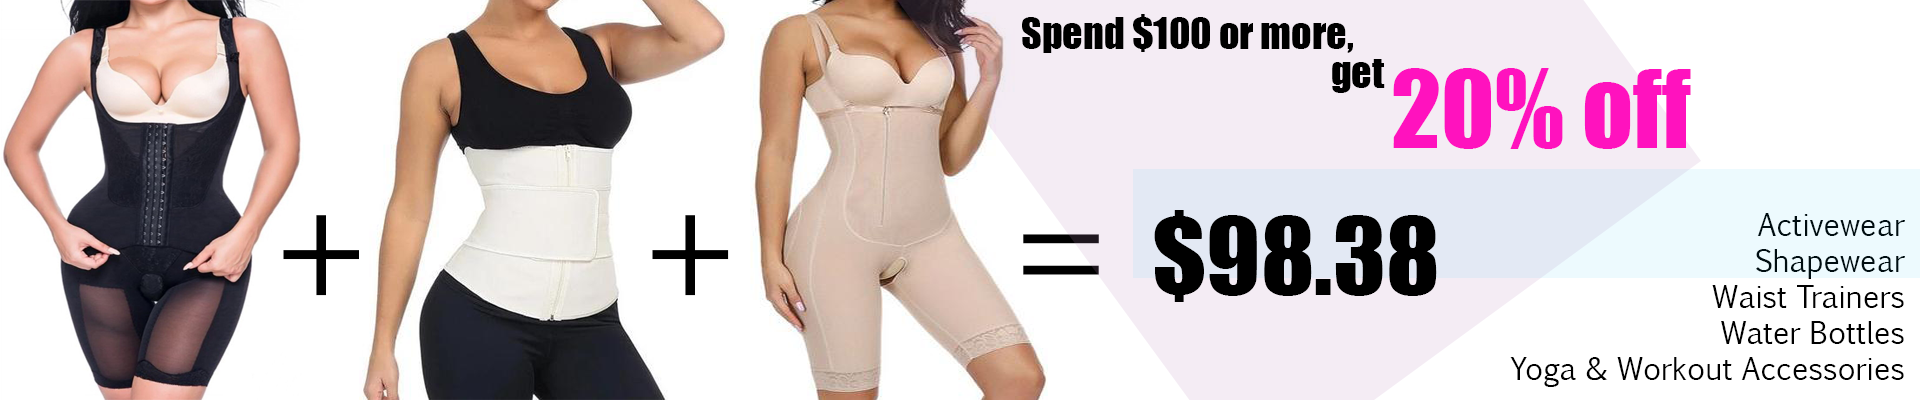 20% off shapewear, waist trainer, yoga and workout accessories